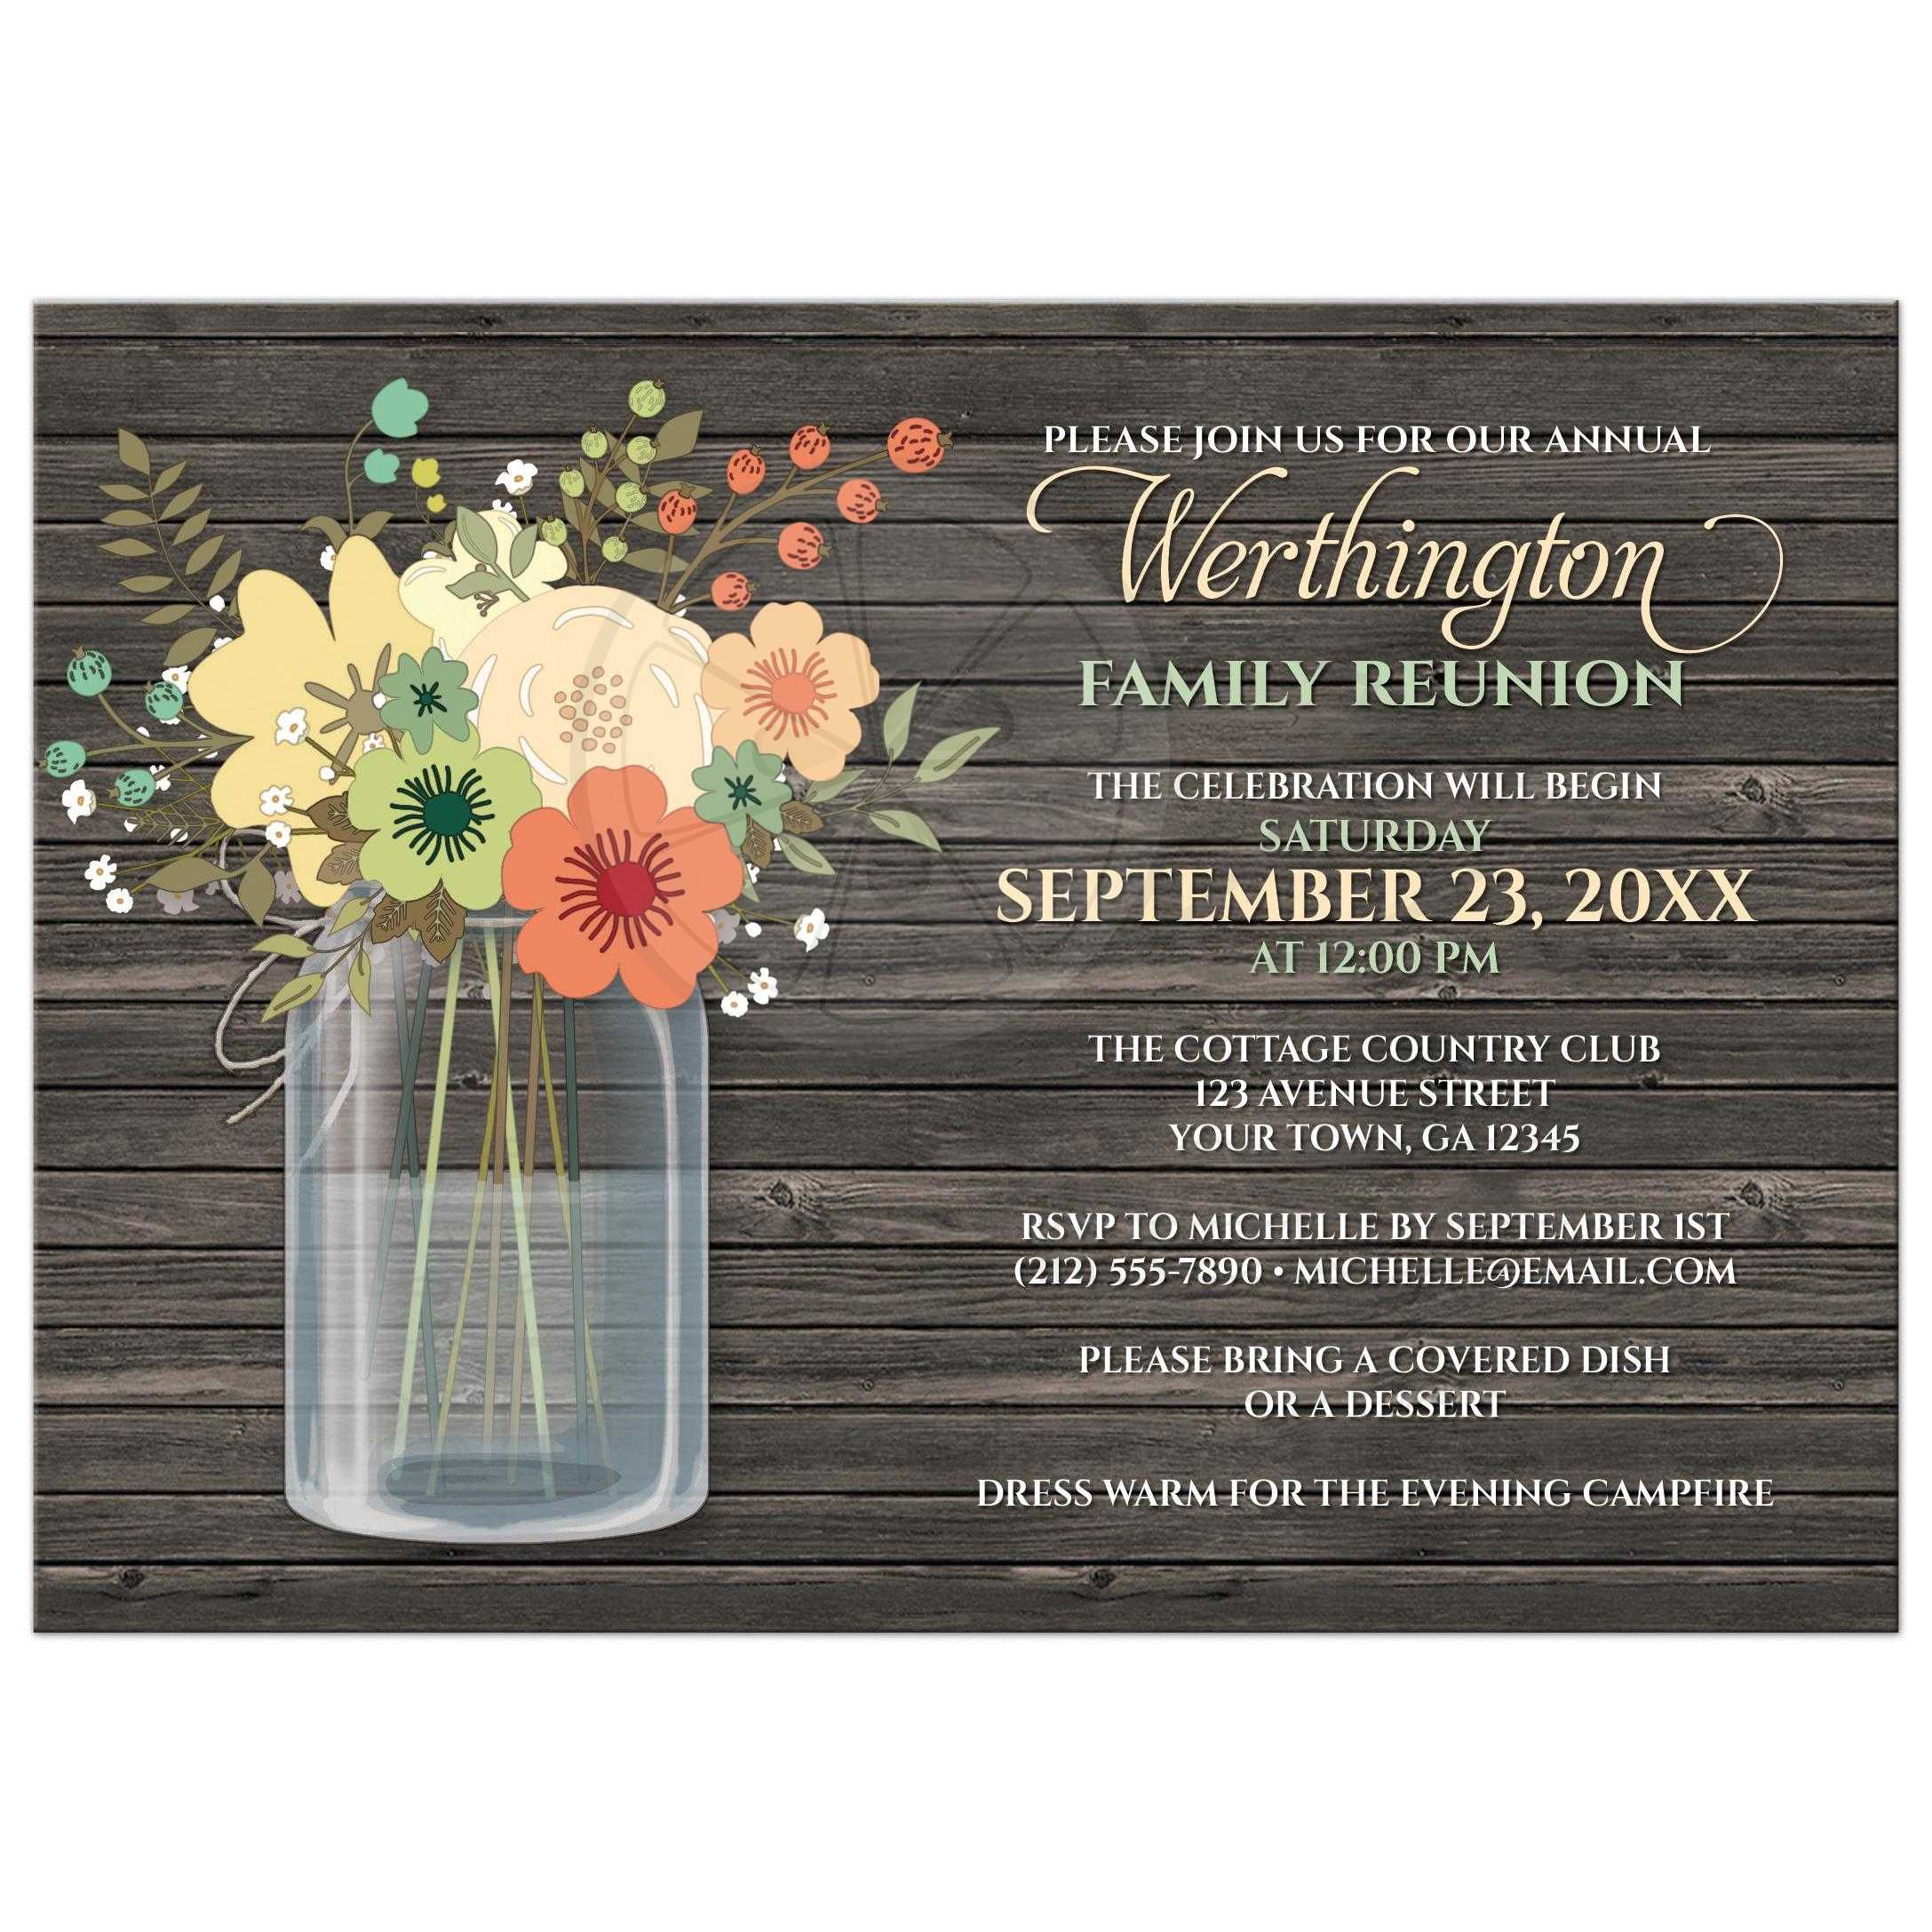 Superb Family Reunion Invitations   Rustic Floral Wood Mason Jar Regard To Family Reunion Invitation Cards